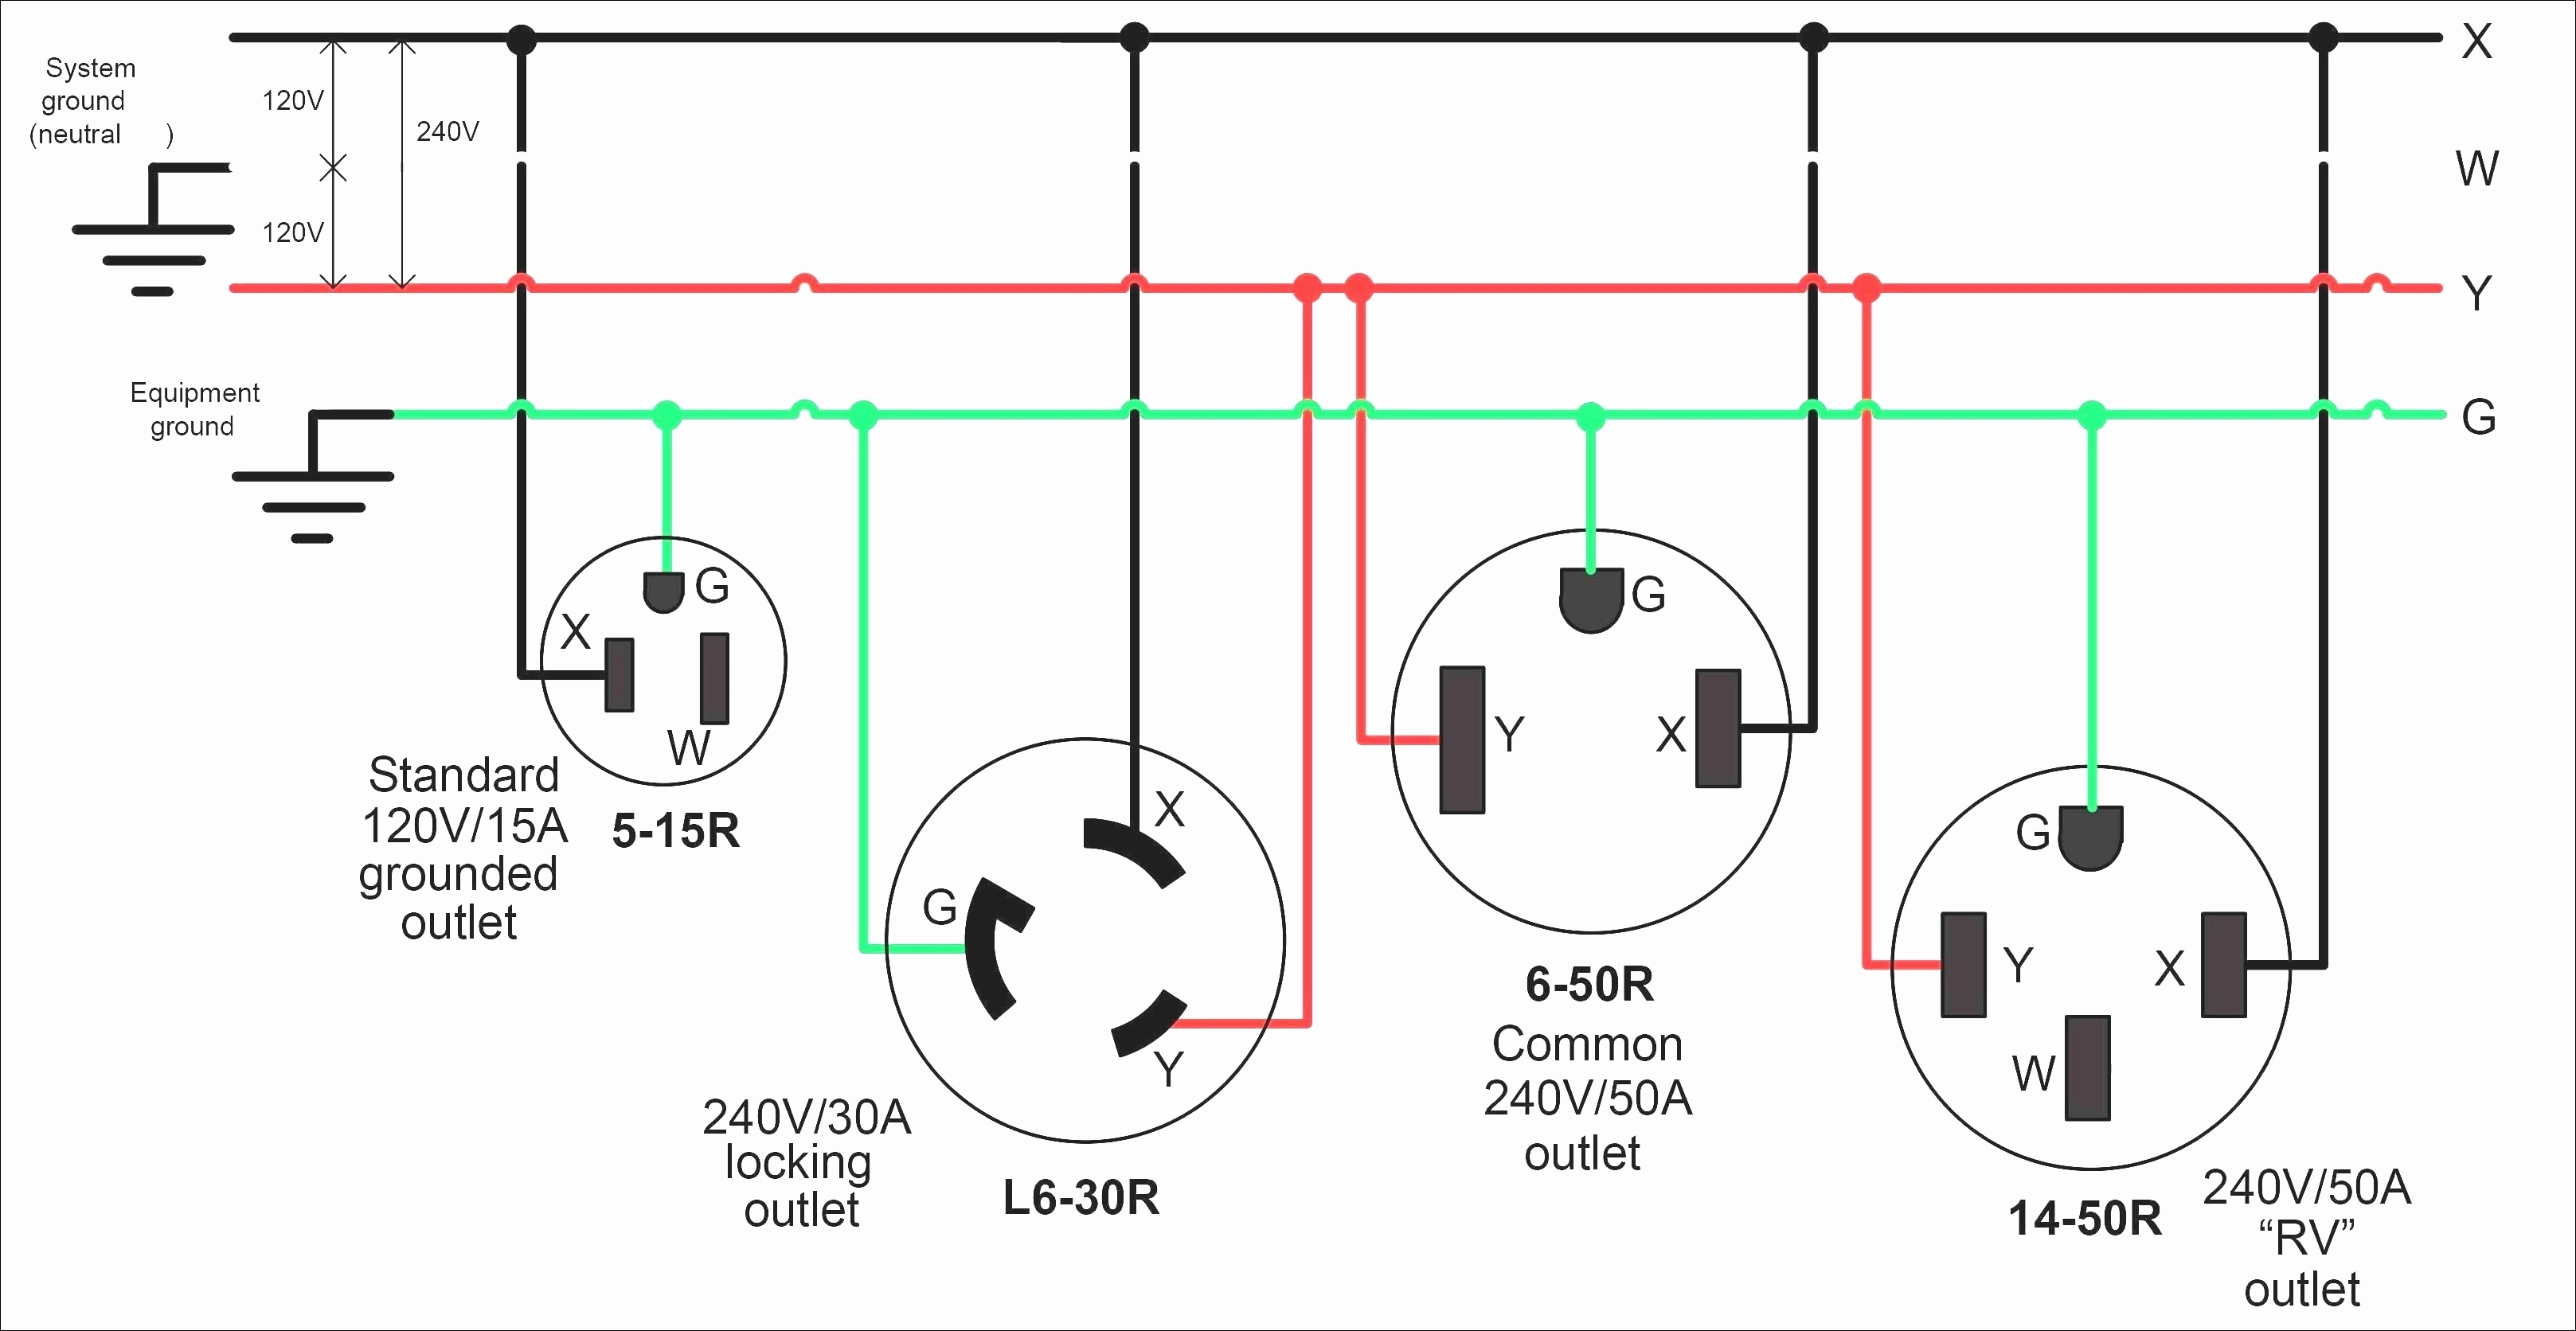 ethernet wall socket wiring diagram - ethernet wall socket wiring diagram  awesome cat 5 wiring diagram